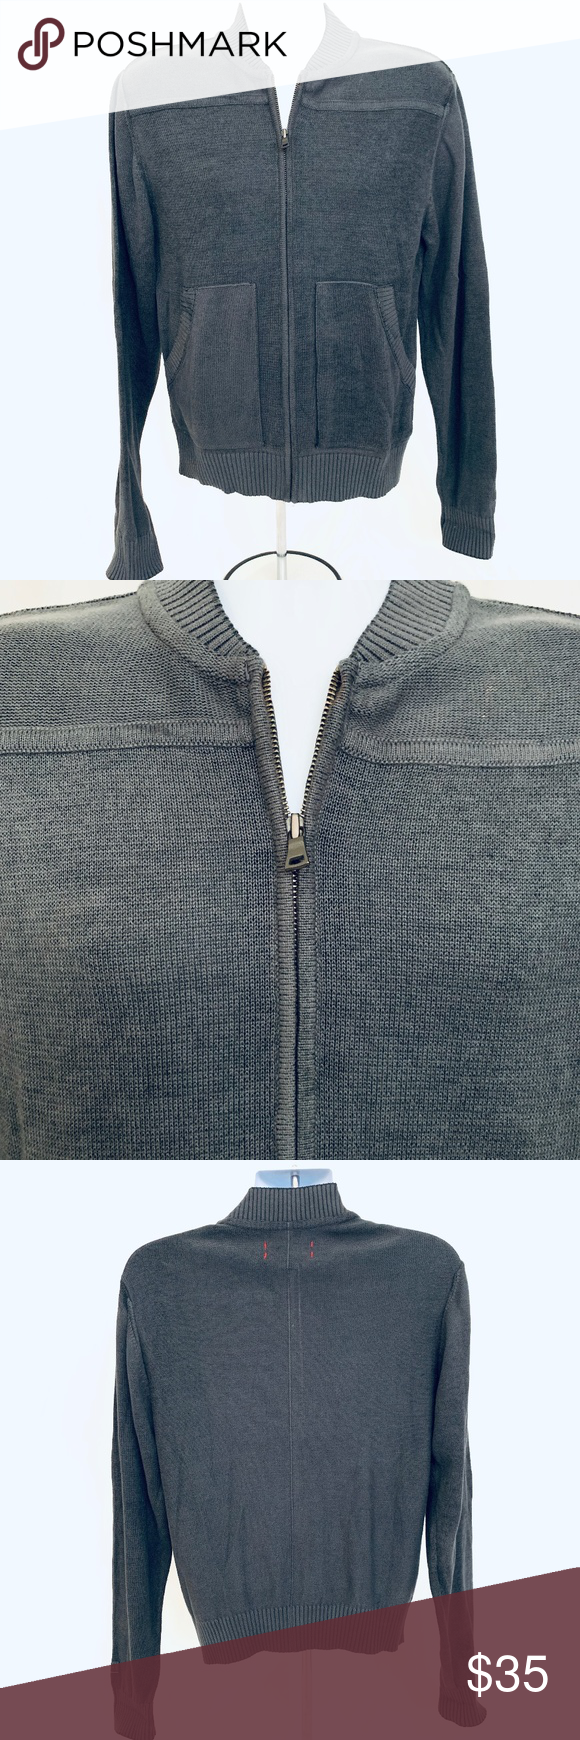 Cutter and Buck Zip Cardigan 100% Cotton Cardigan in shale. Full zip ff6e62e49